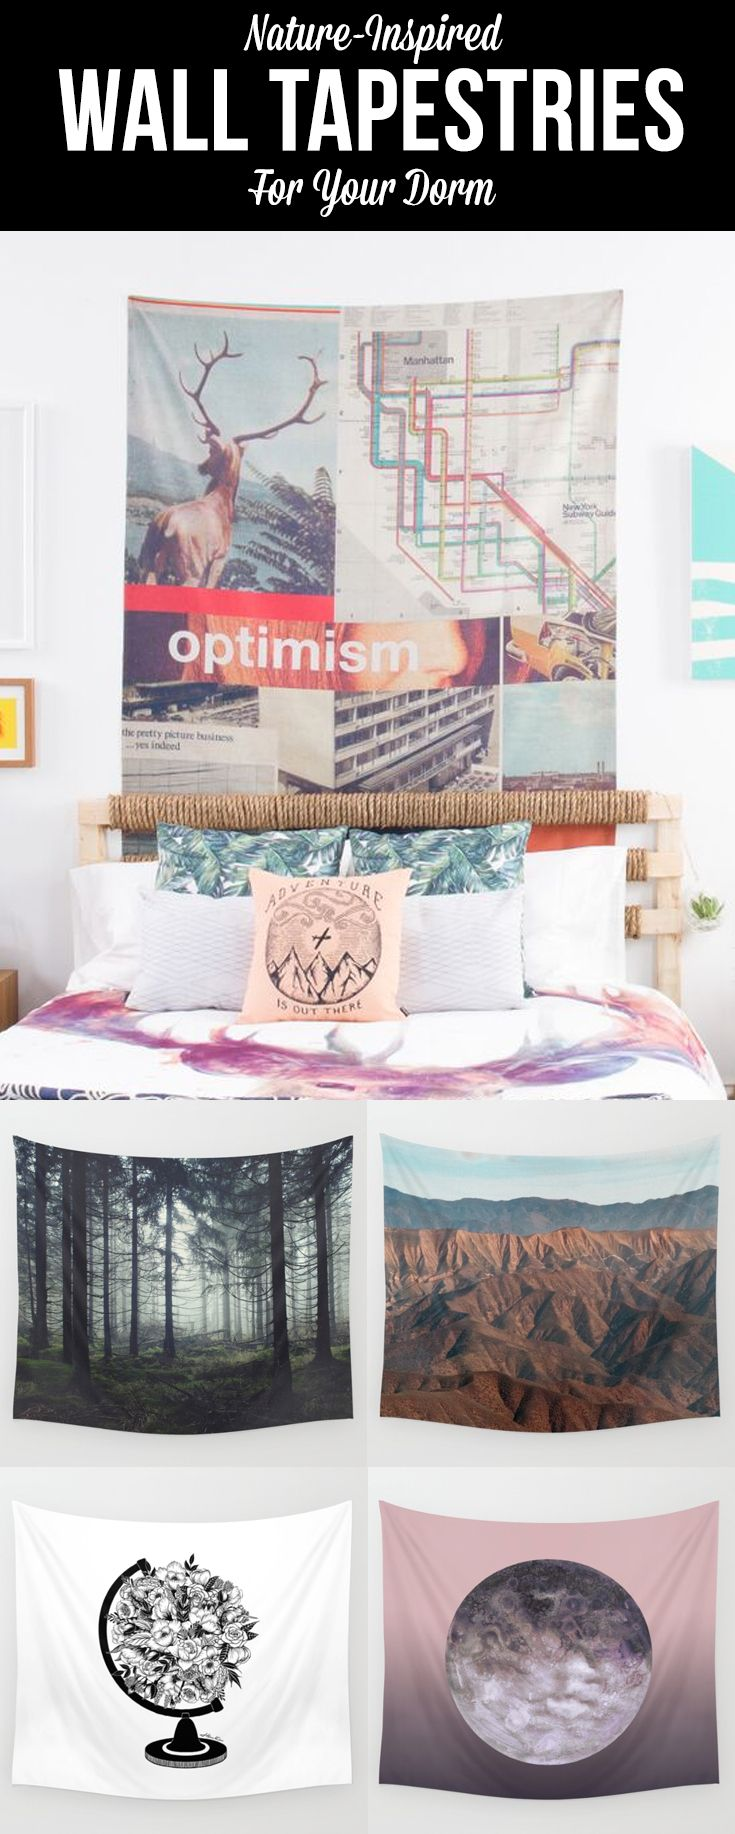 Outdoorsy folks, travelers, city explorers...bring the world into your dorm. Find nature-inspired products and more inside our Adventurist Collection at Society6.com.